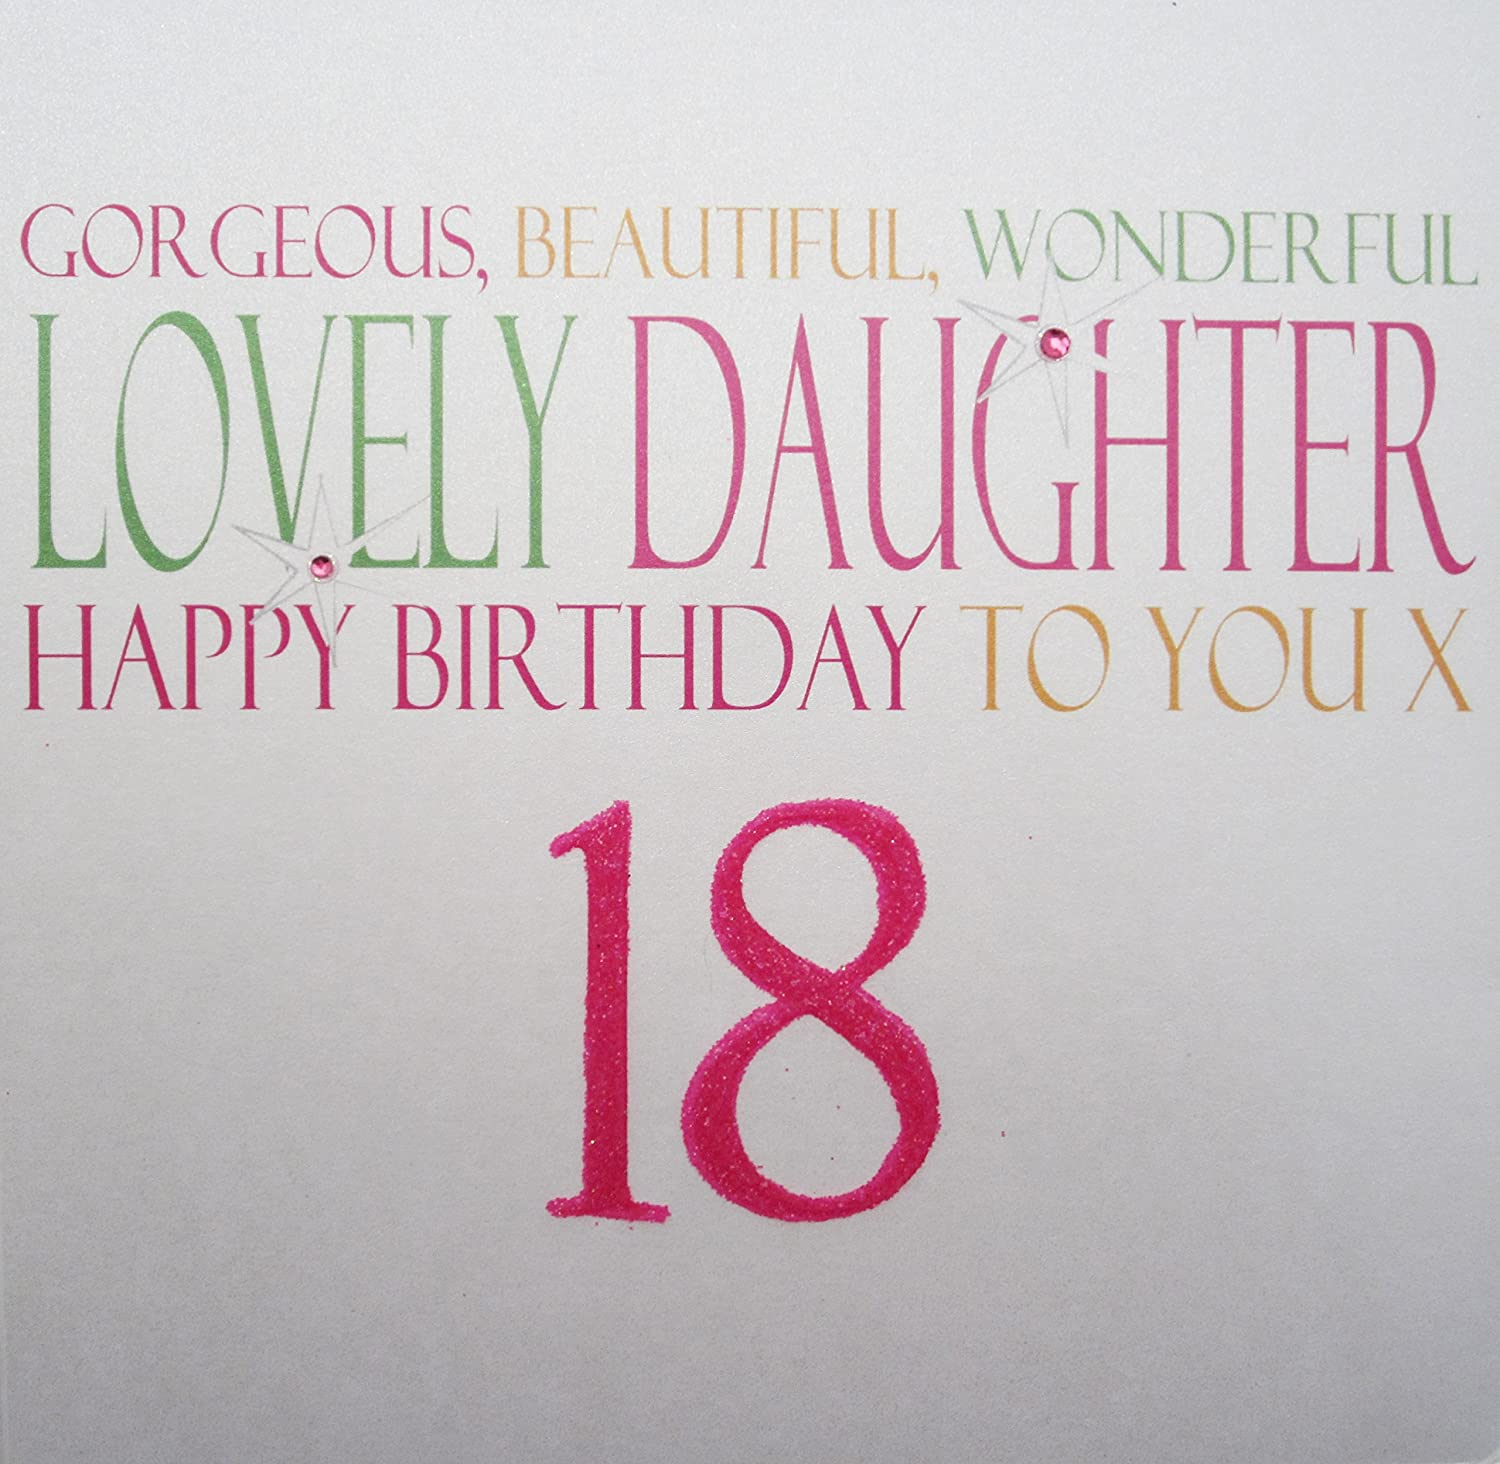 WHITE COTTON CARDS Gorgeous Beautiful Wonderful Daughter Happy 18 Handmade Large 18th Birthday Card Code N21 Amazoncouk Kitchen Home